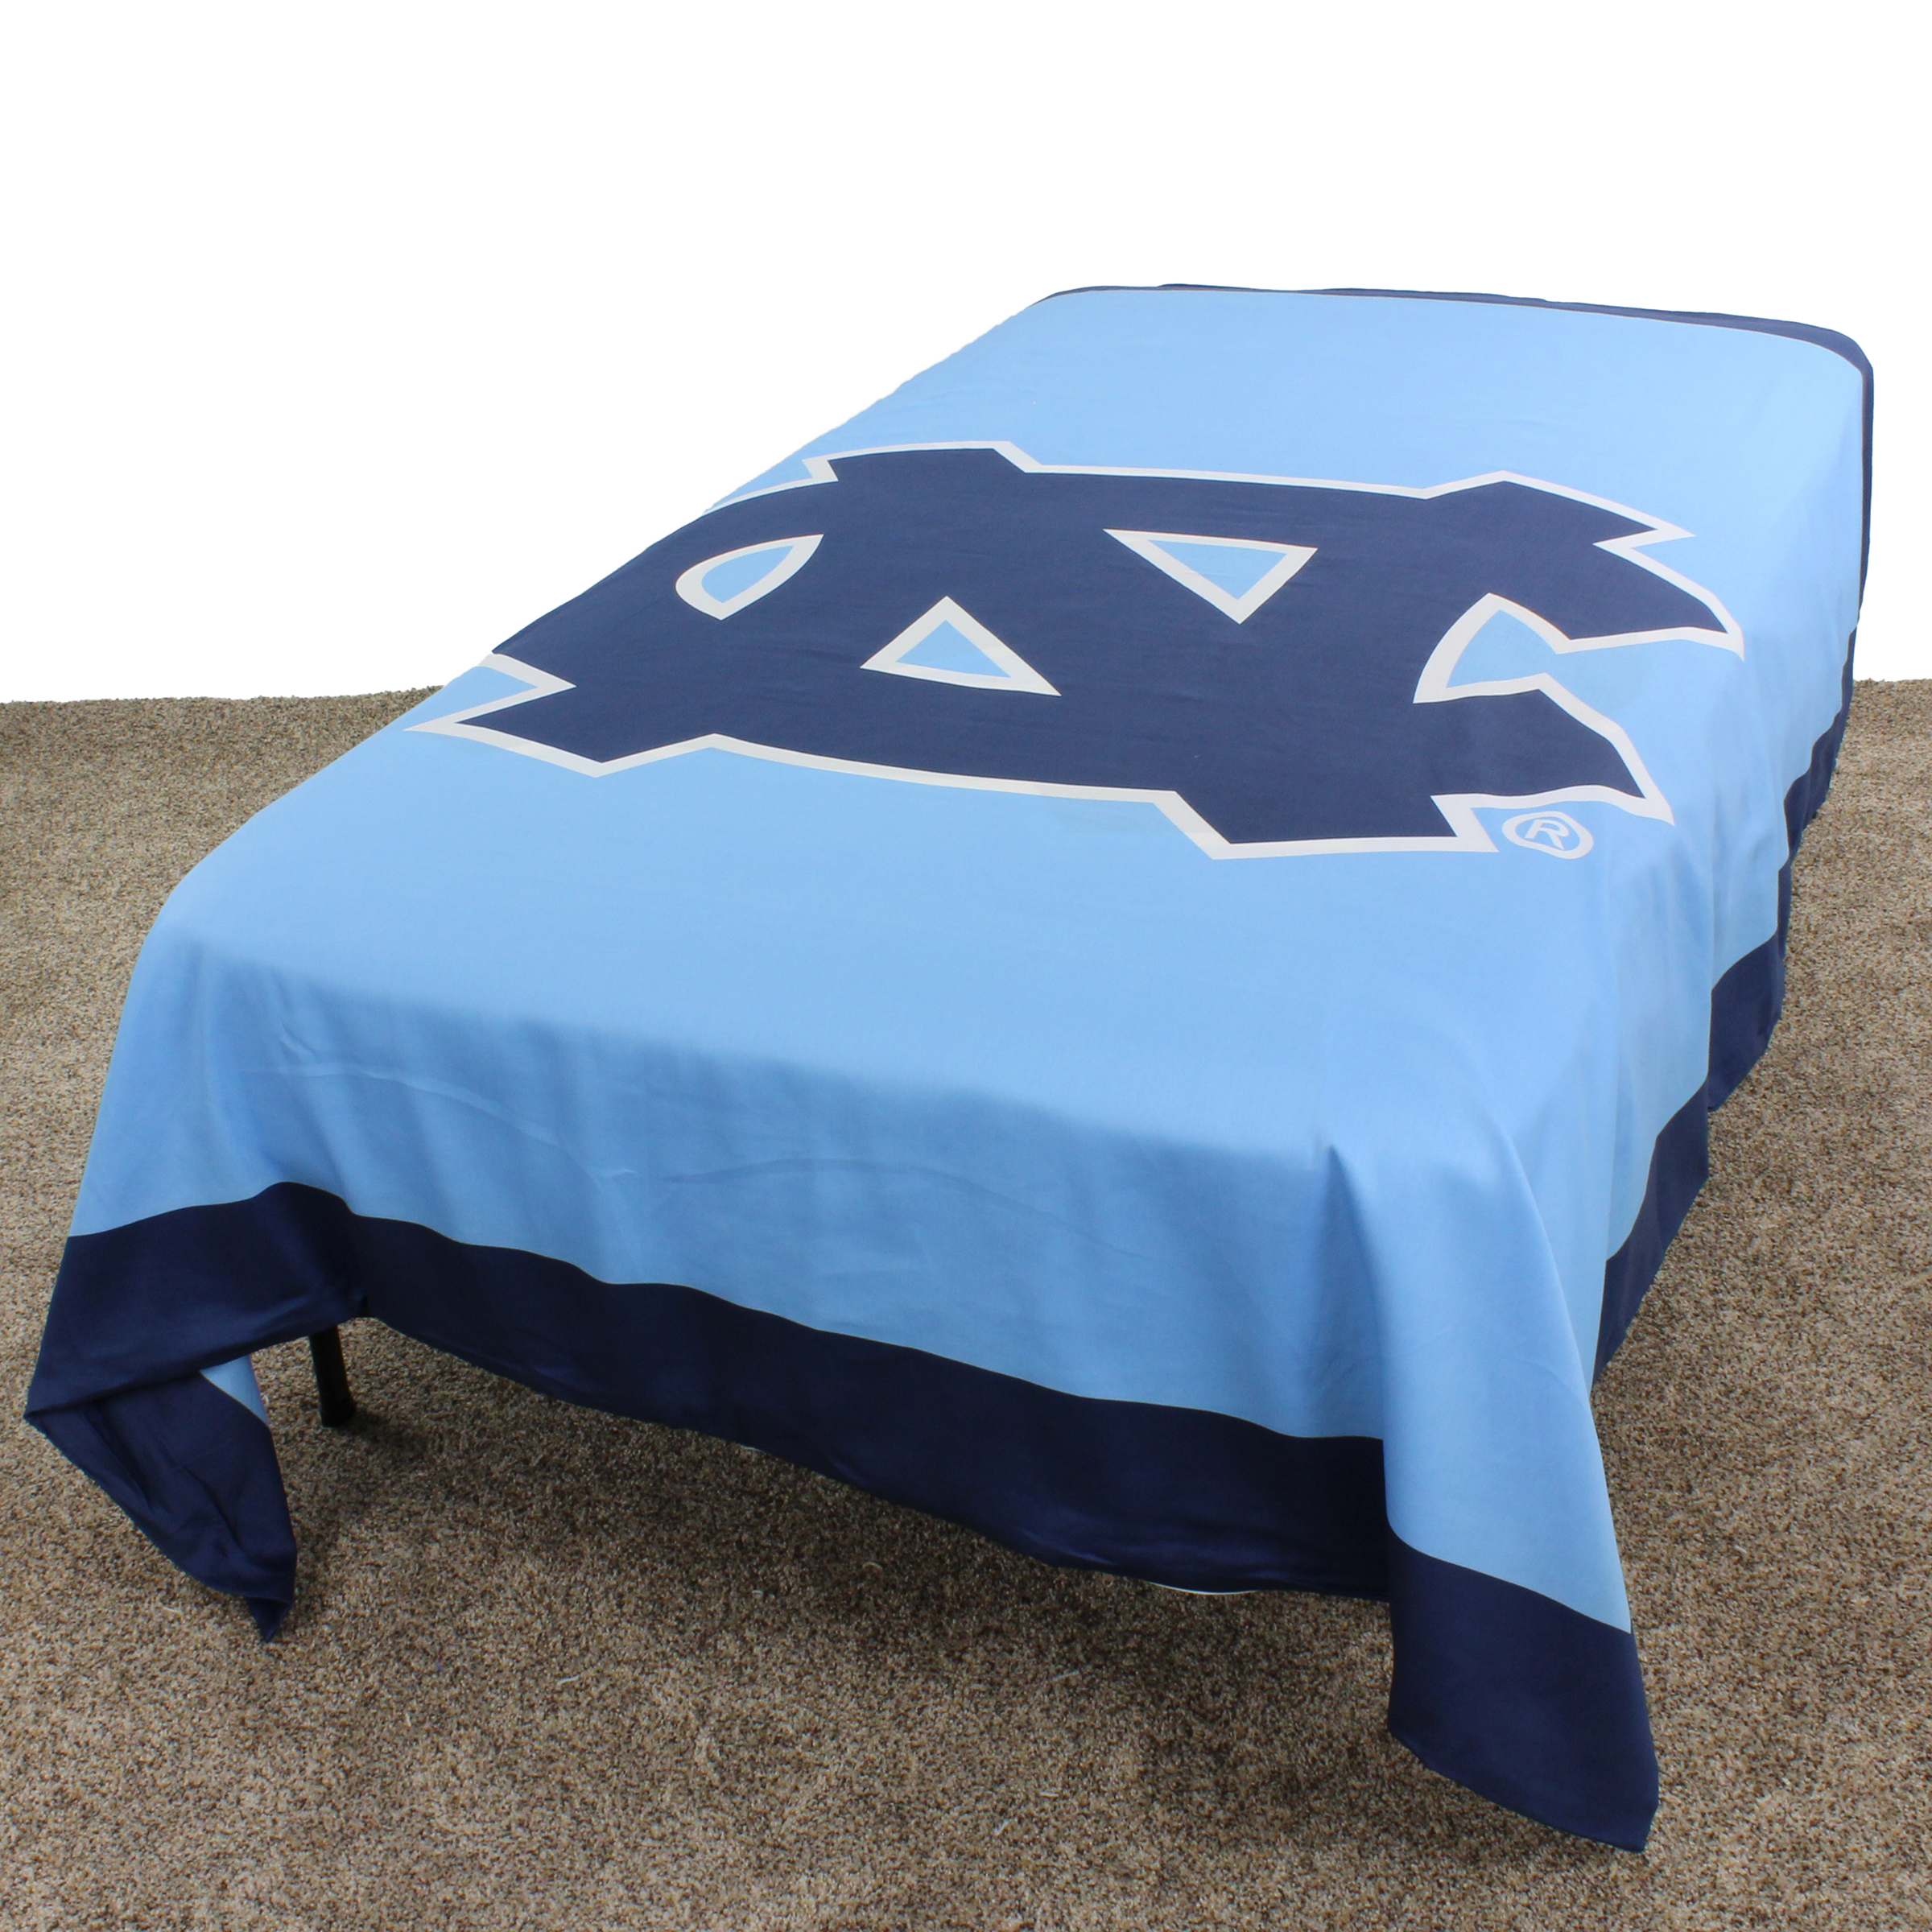 "North Carolina Tar Heels Duvet Cover / Summer Blanket, 2 Sided Reversible, 100% Cotton, 68"" x 86"", Twin"